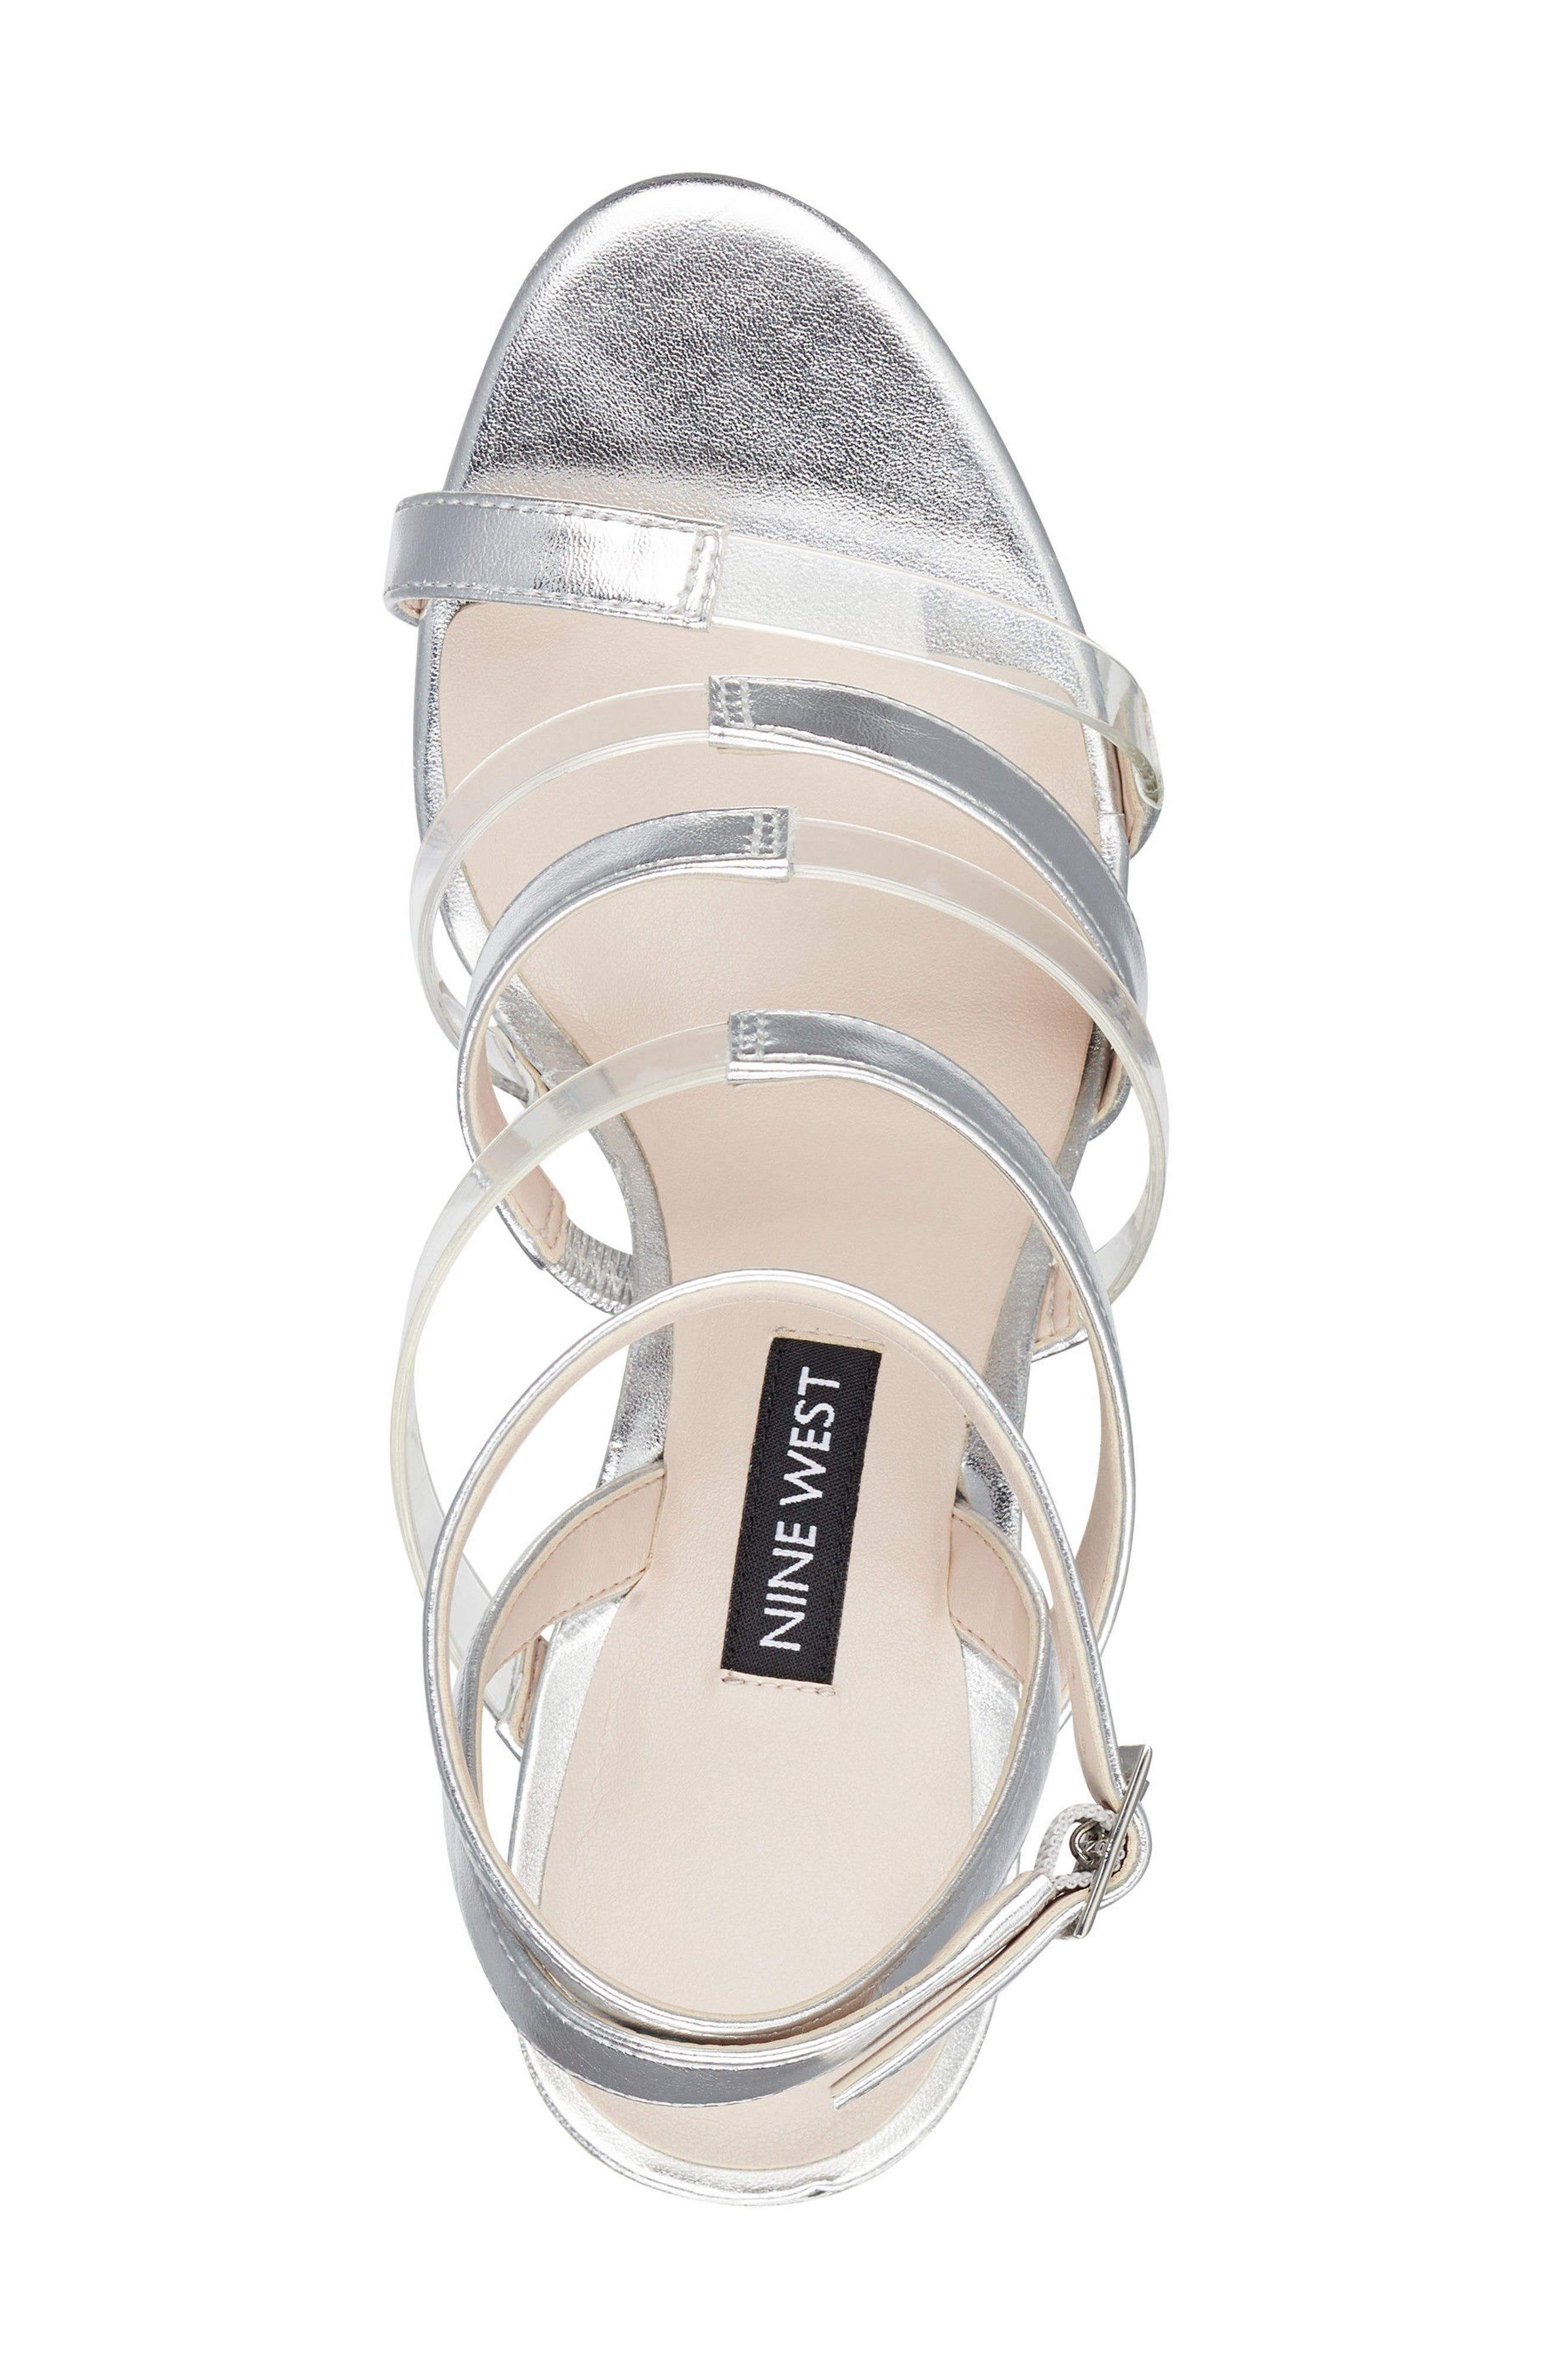 Fazzani Cage Sandal,                             Alternate thumbnail 5, color,                             CLEAR/ SILVER FAUX LEATHER